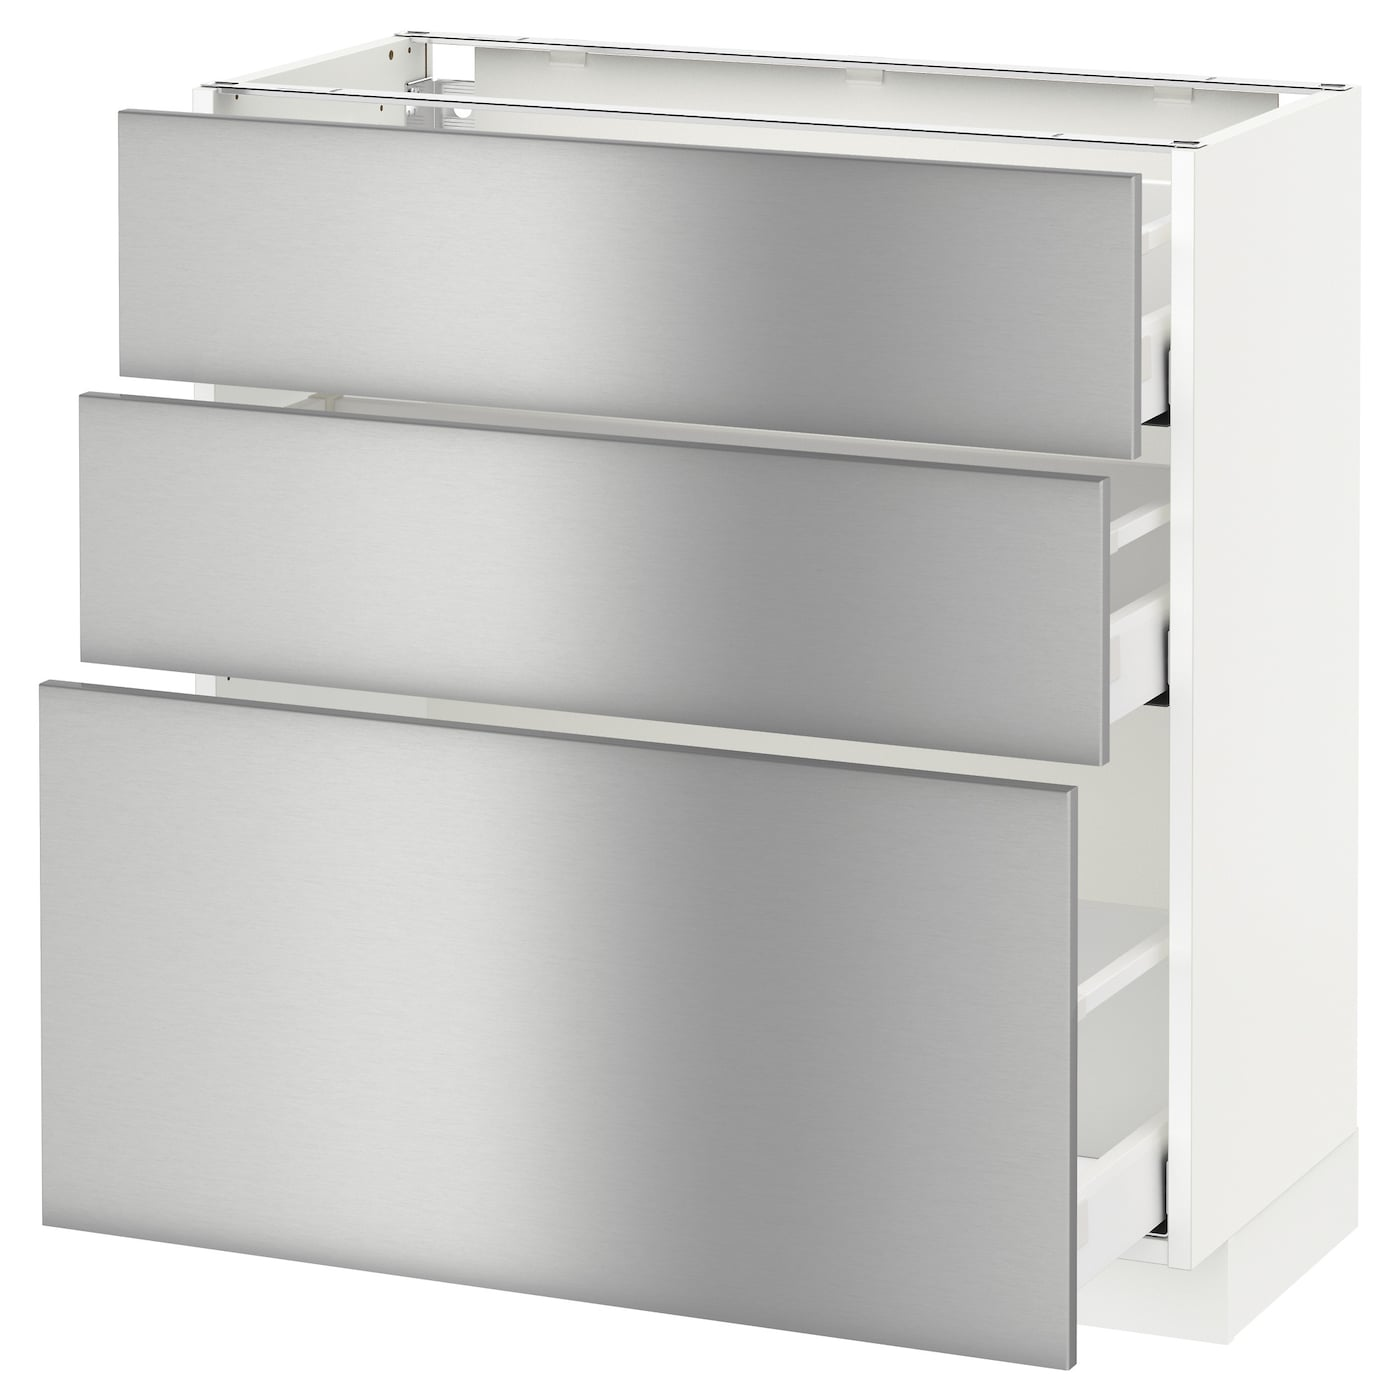 Metod maximera base cabinet with 3 drawers white grevsta for Metal kitchen cabinets